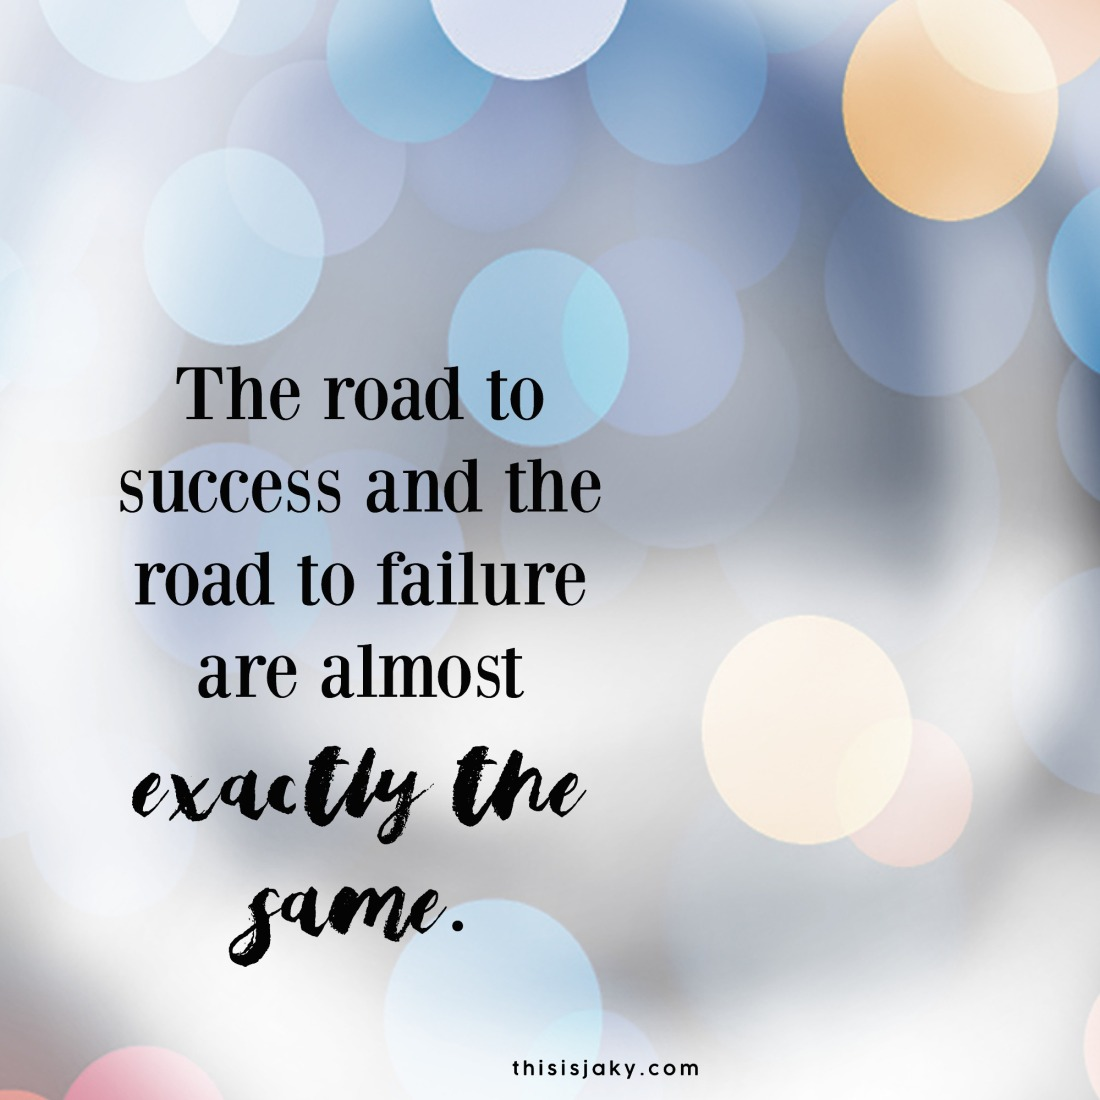 road to success and failure.jpg